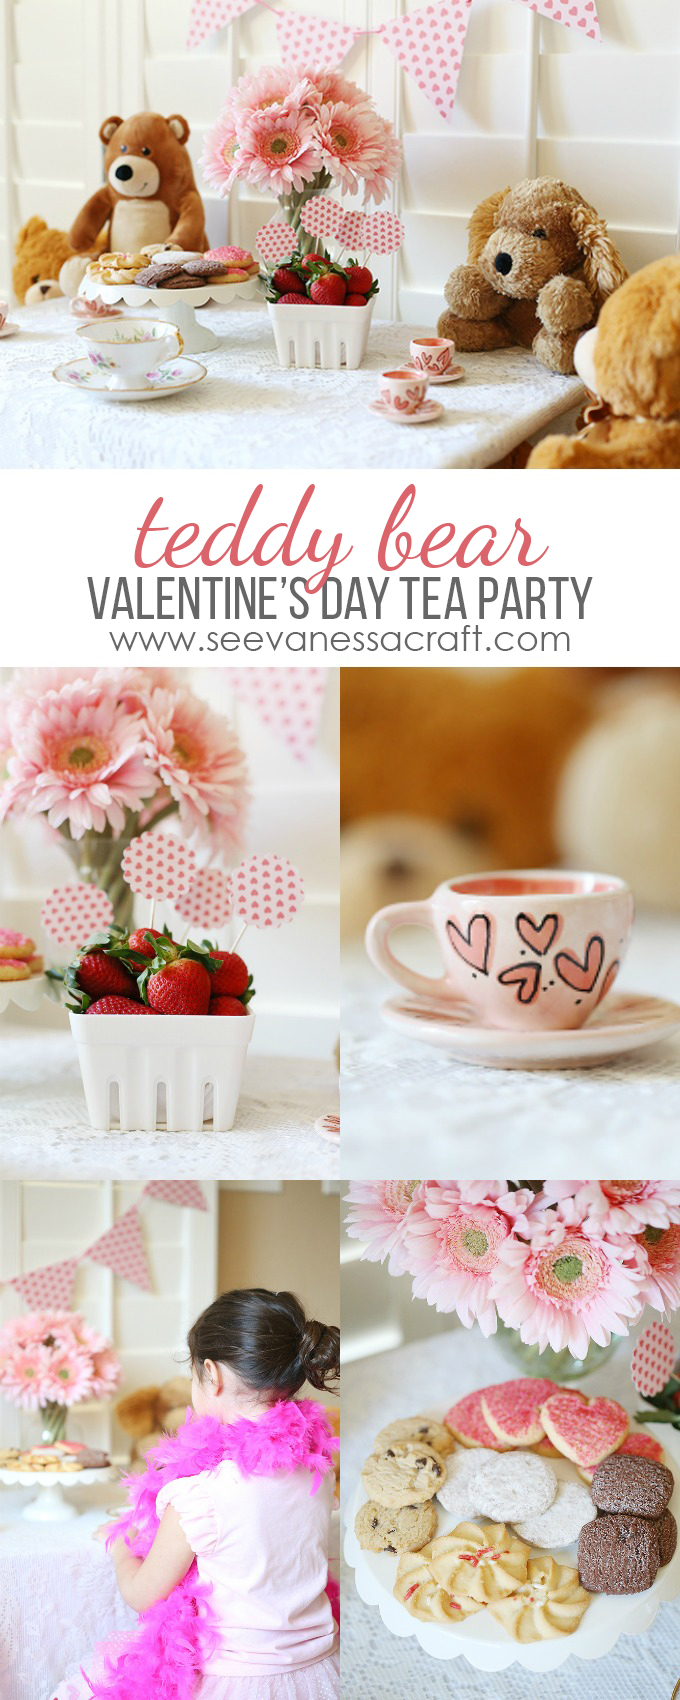 Valentines Day Teddy Bear Tea Party copy